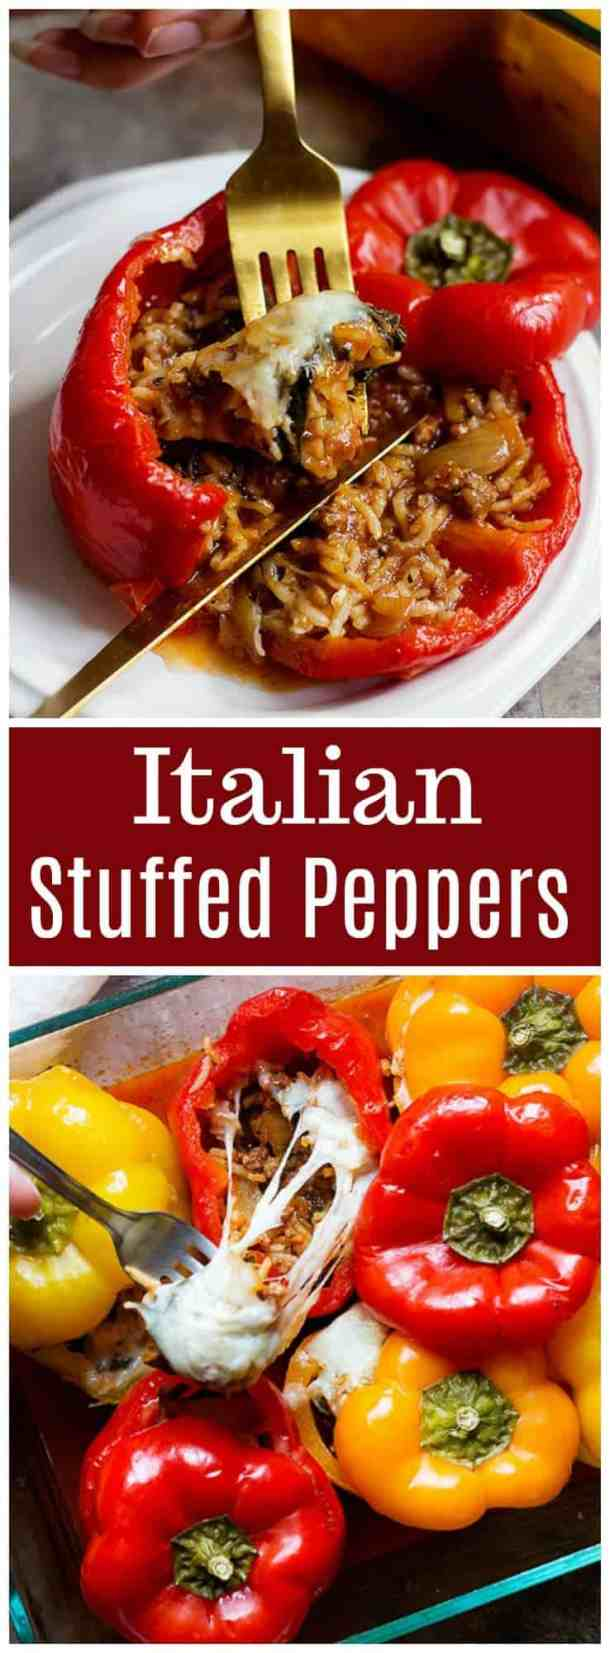 These Italian stuffed peppers are the ultimate family dinner. They're made with rice, mushrooms and spinach and taste great! #stuffedpeppers #dinnerrecipes #italianrecipes #italianpeppers #easydinner #healthyrecipes #easyrecipes